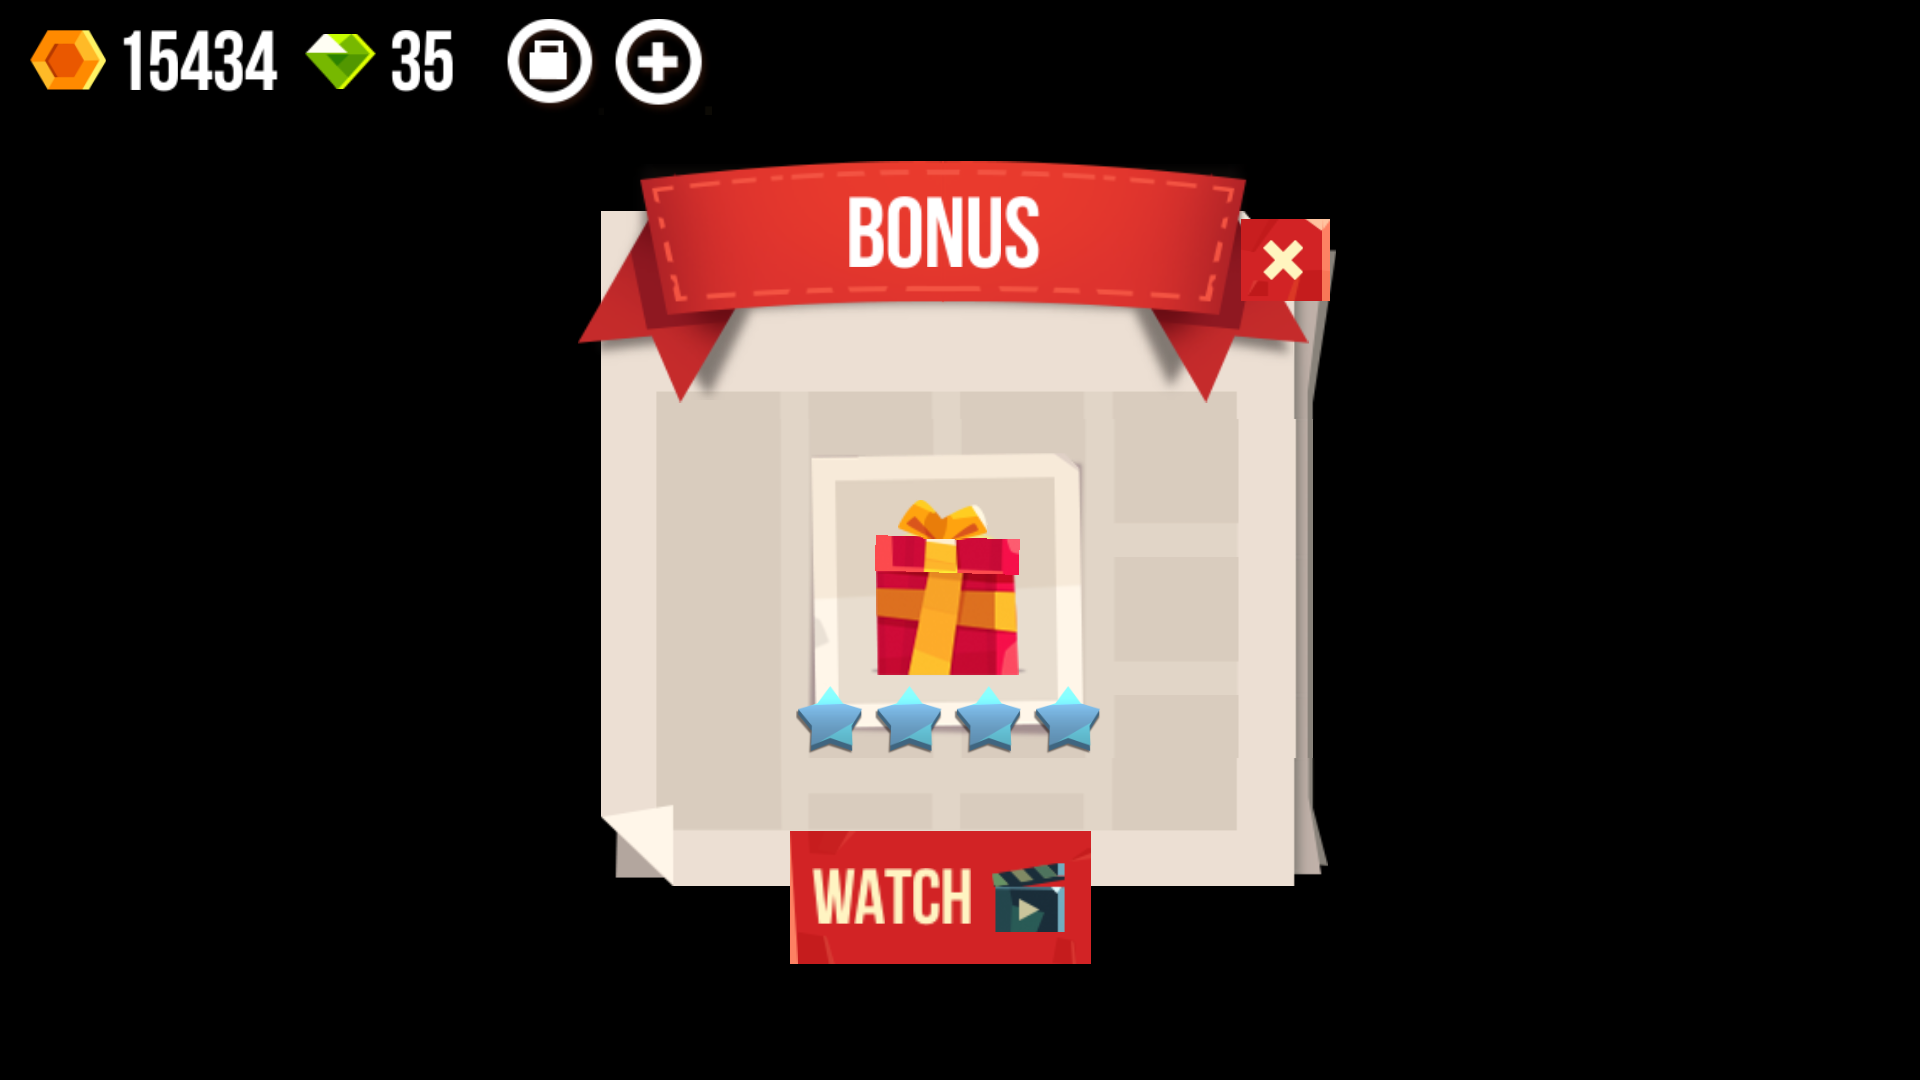 Bonus Box for Video Ads